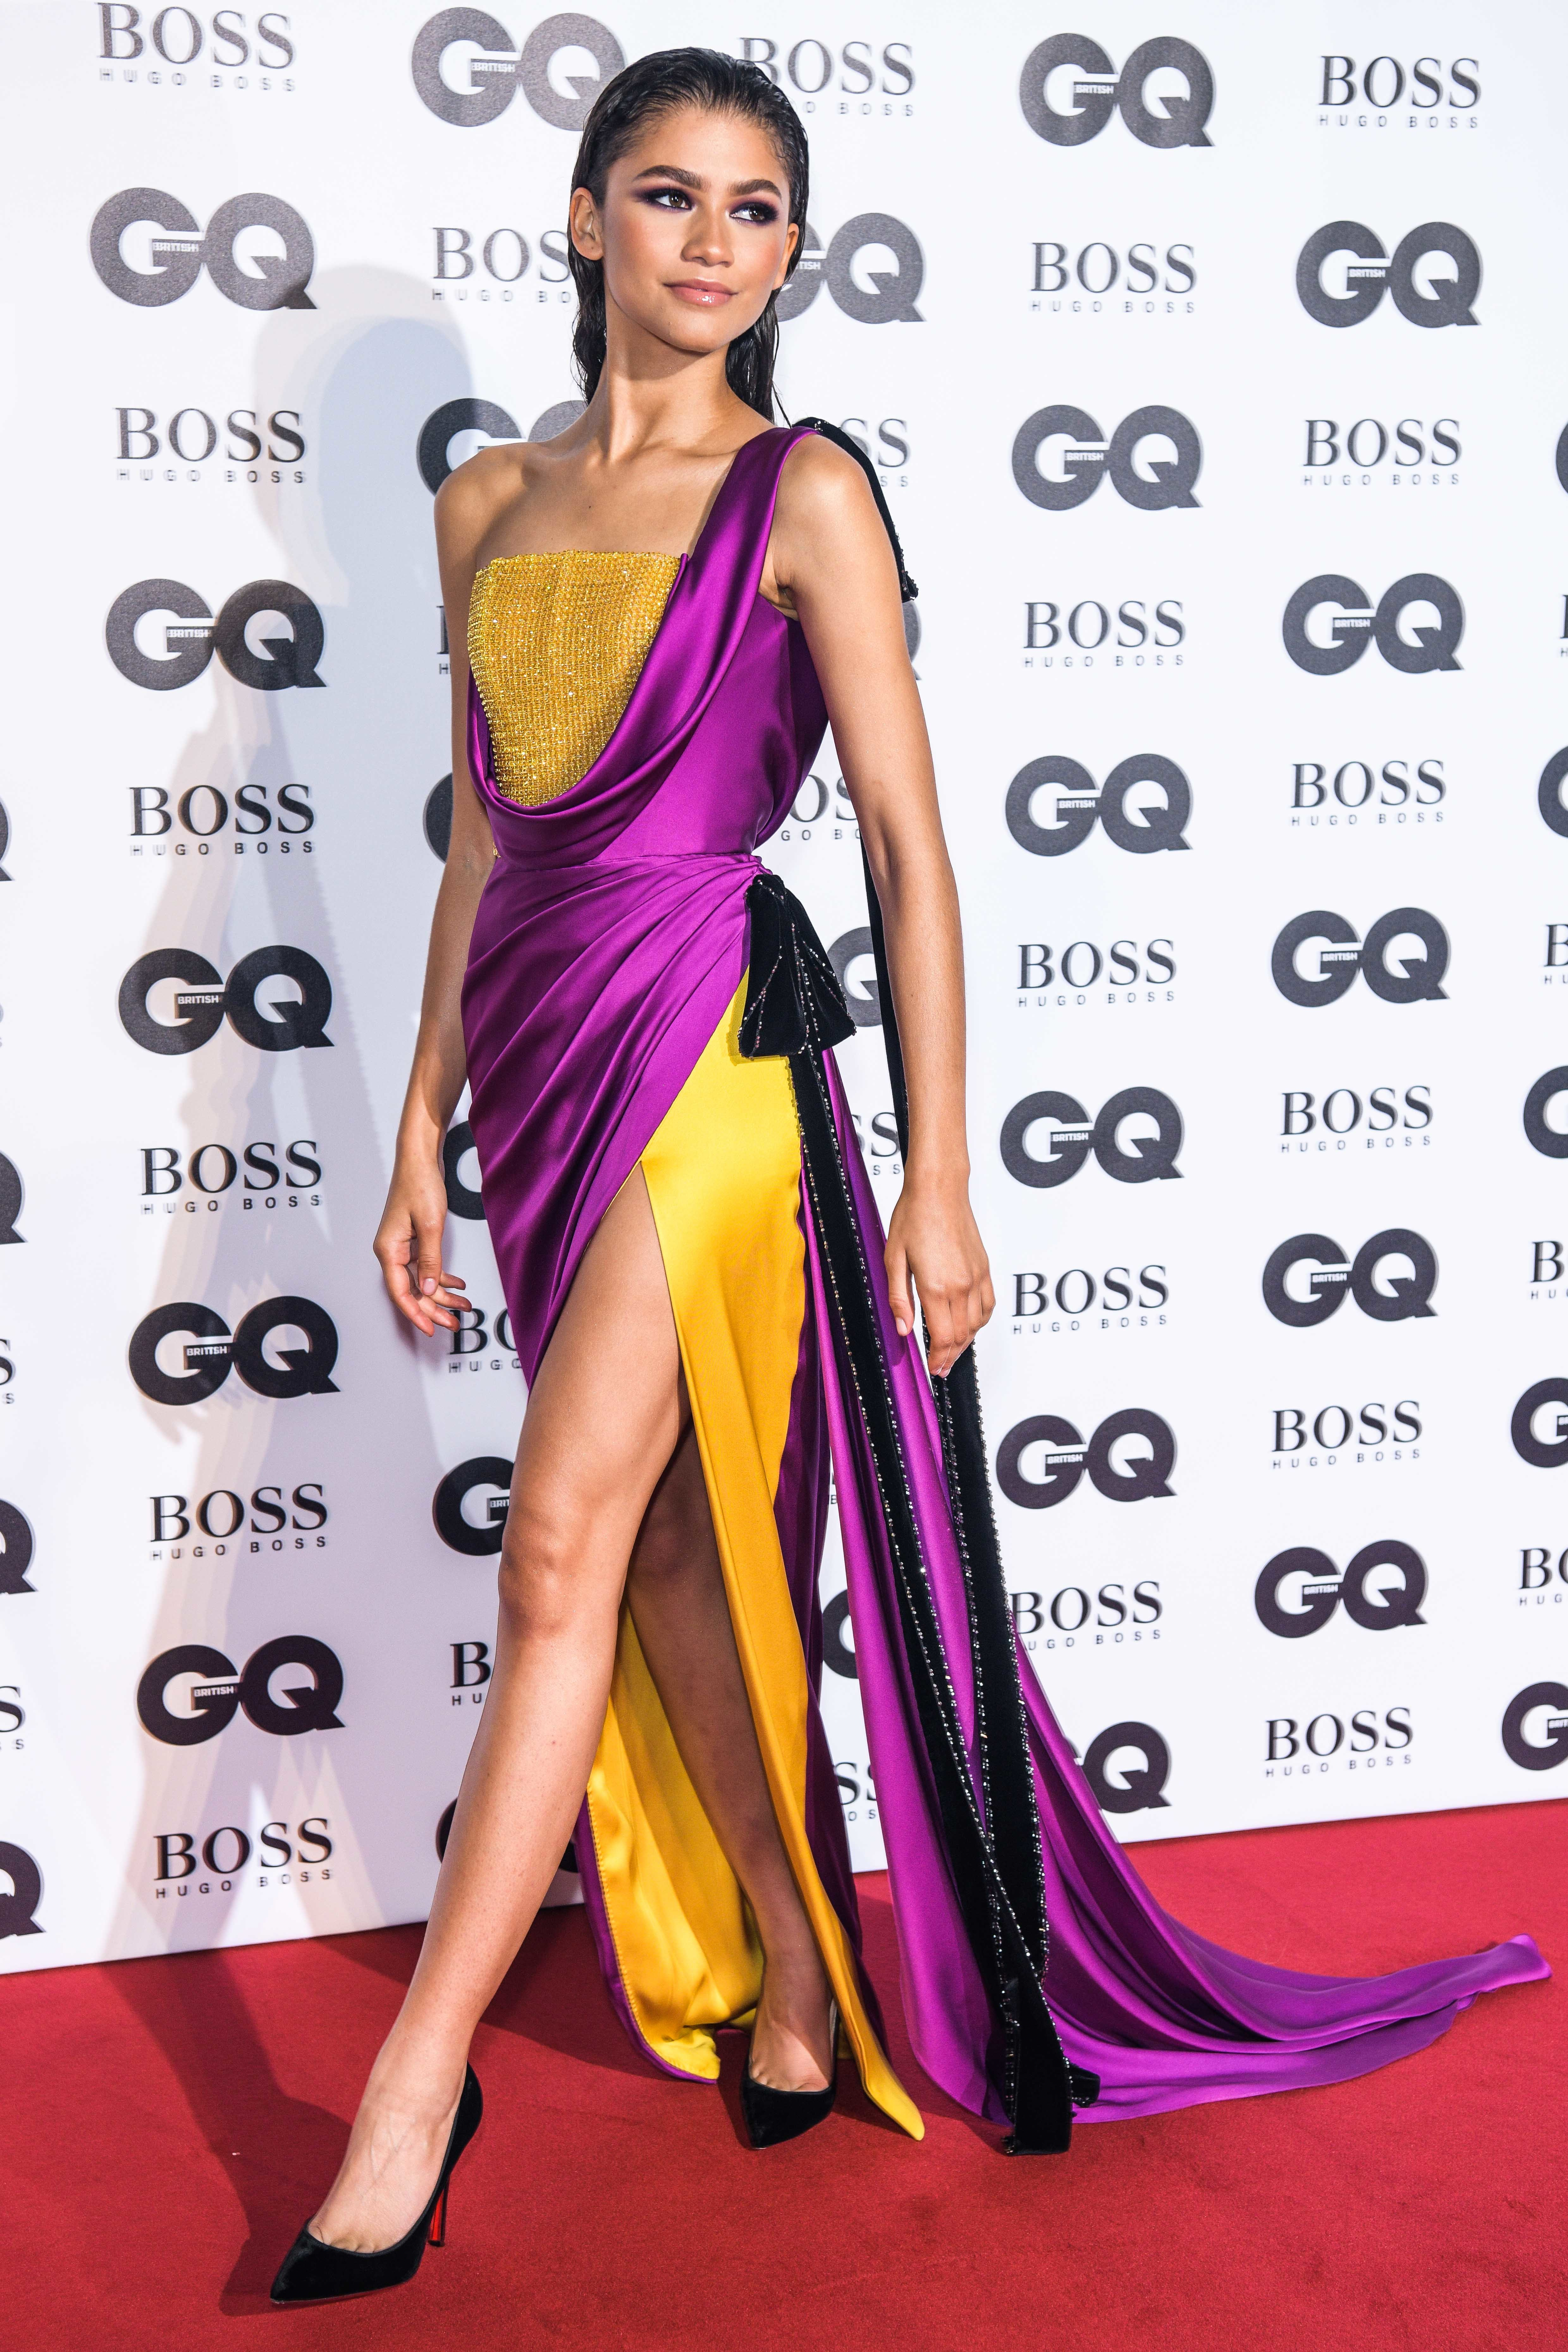 Zendaya, in Ralph & Russo, arrives at the GQ Men of the Year Awards at the Tate Modern in London on Sept. 5, 2018.